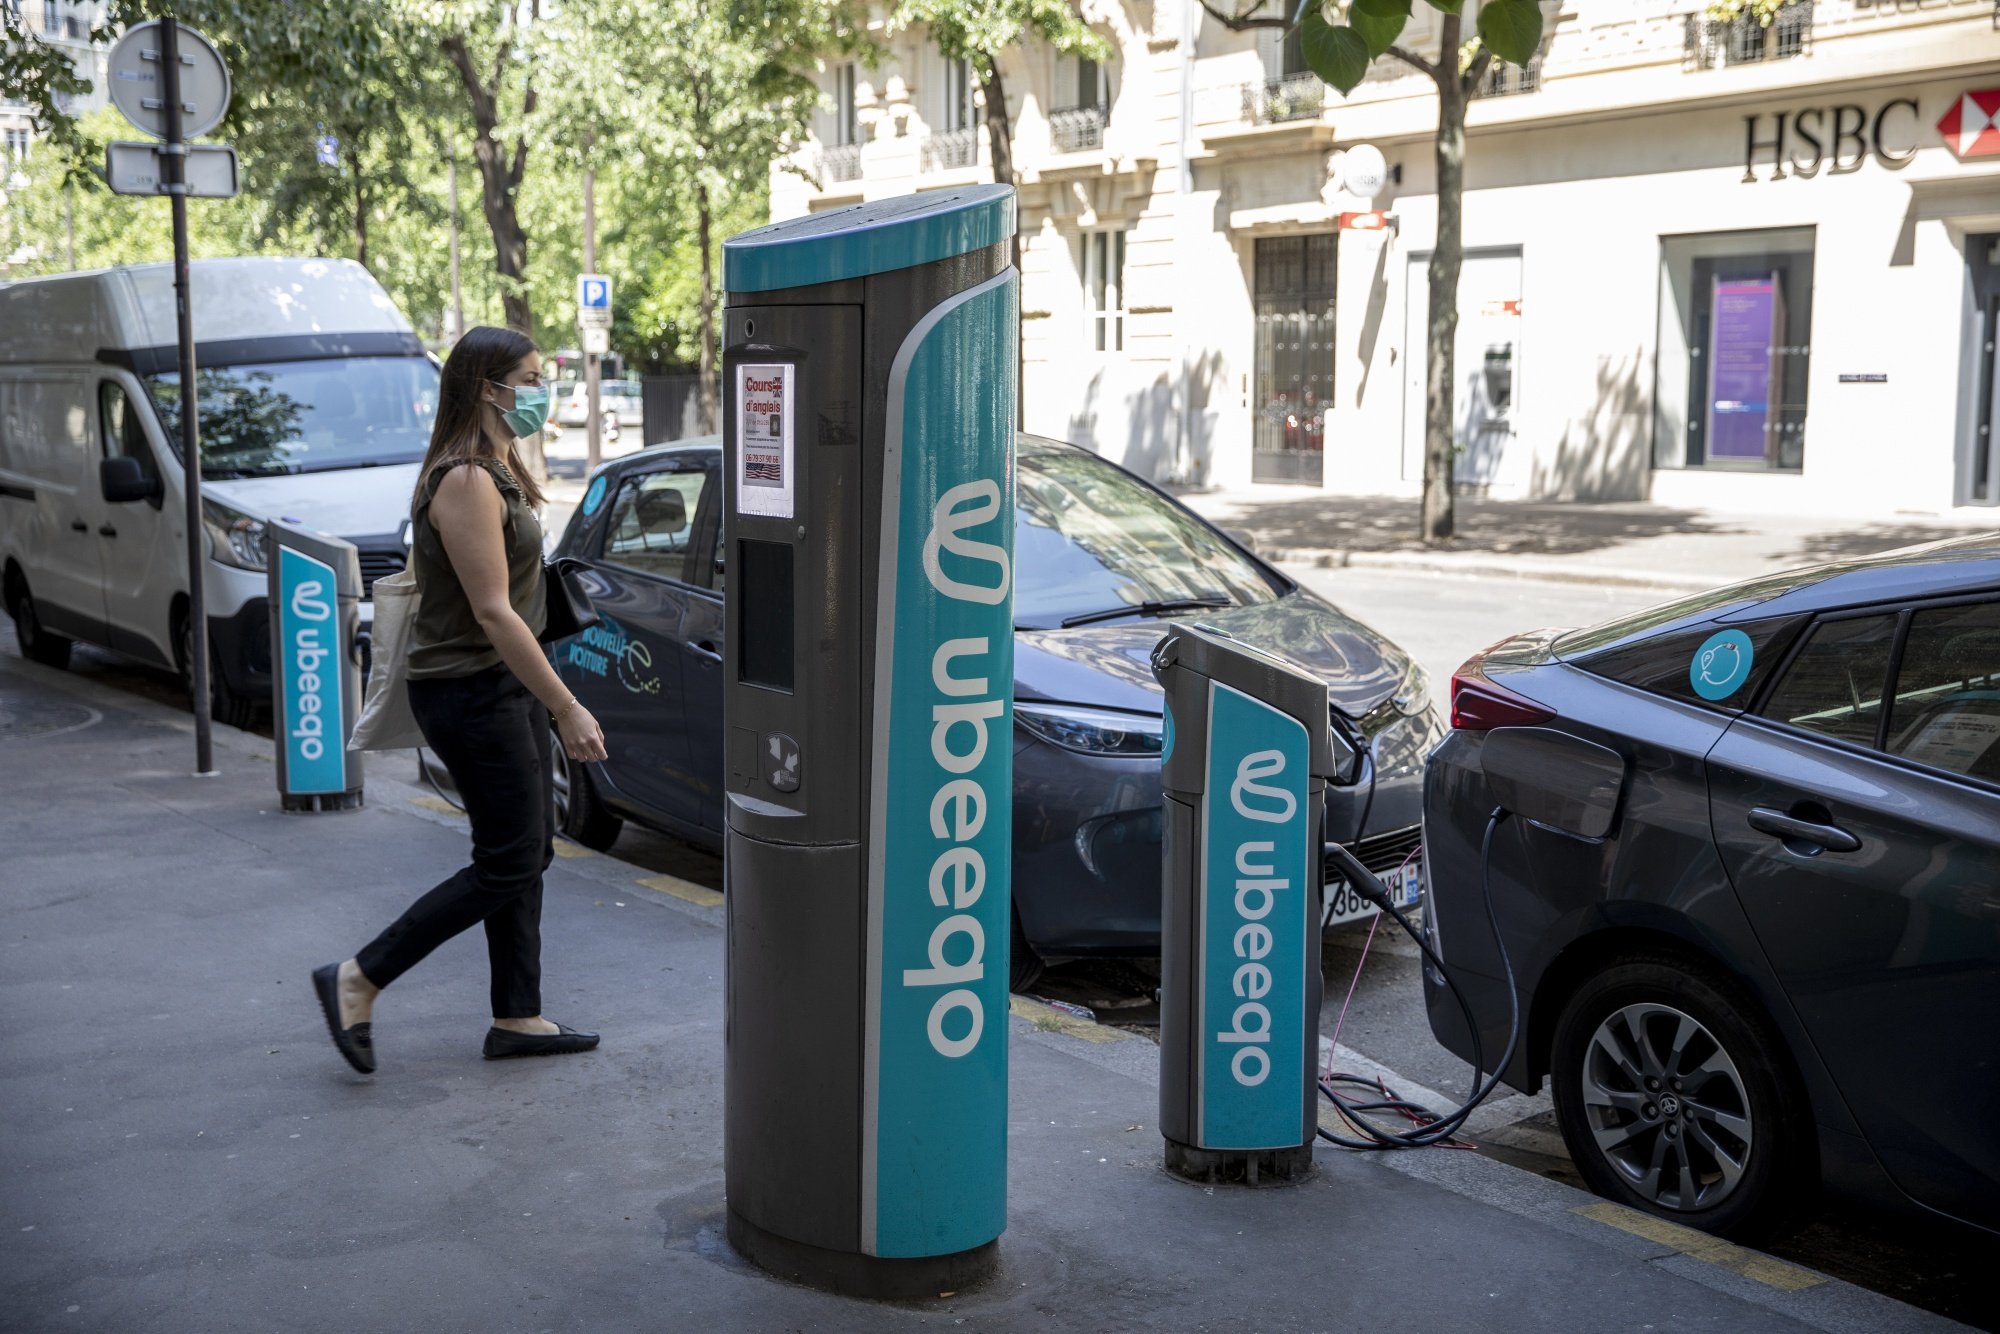 A pedestrianpasses electric automobiles charging at Ubeeqo SAS electric vehicle charge stations in Paris, France on May 27, 2020.